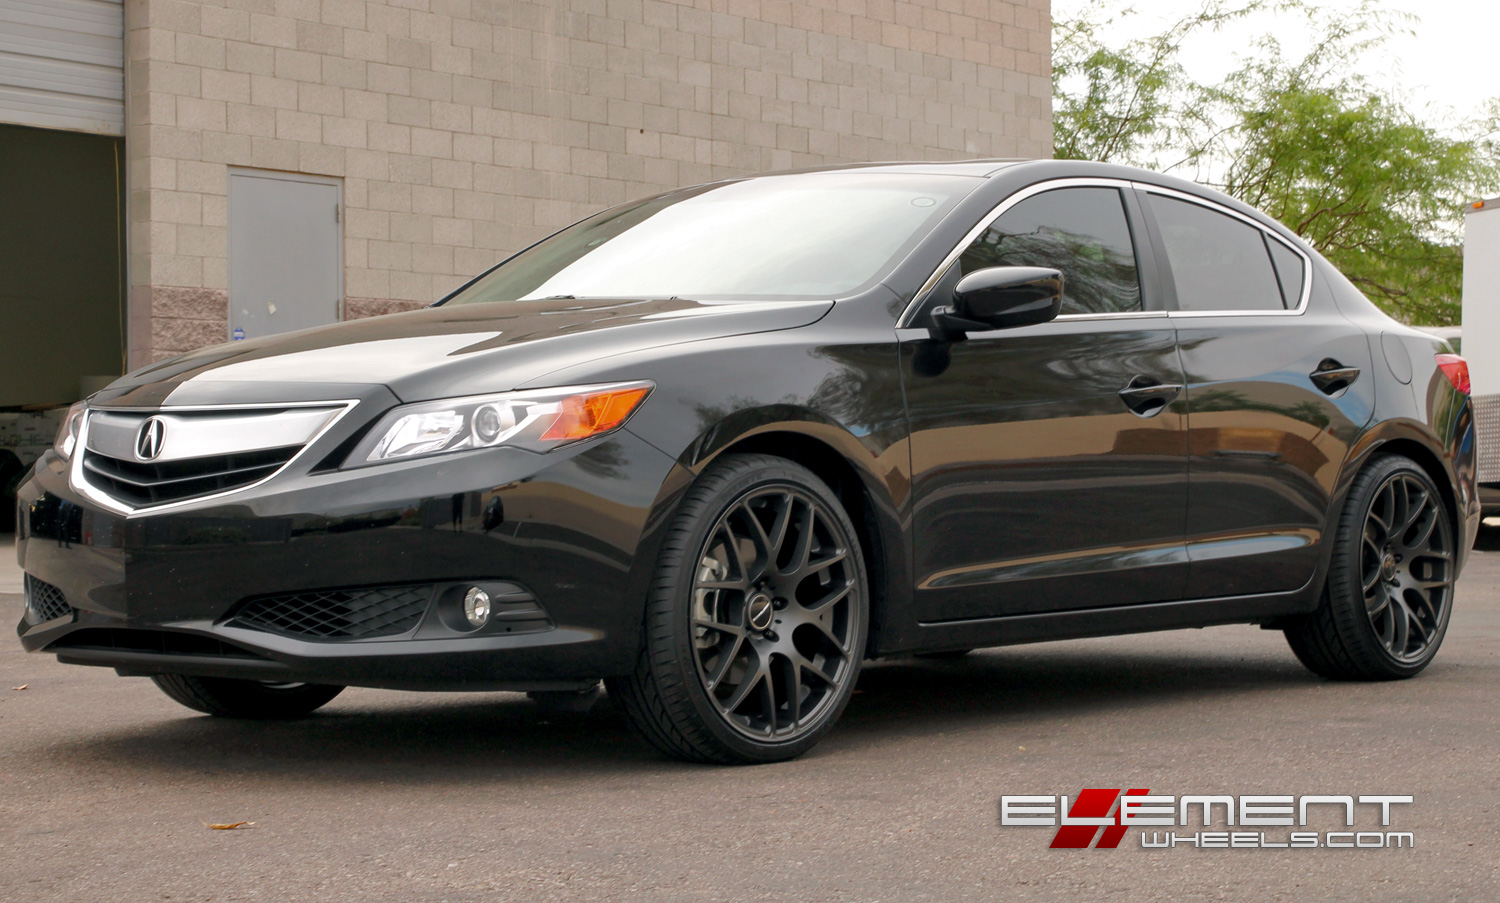 Acura Ilx Wheels Custom Rim And Tire Packages